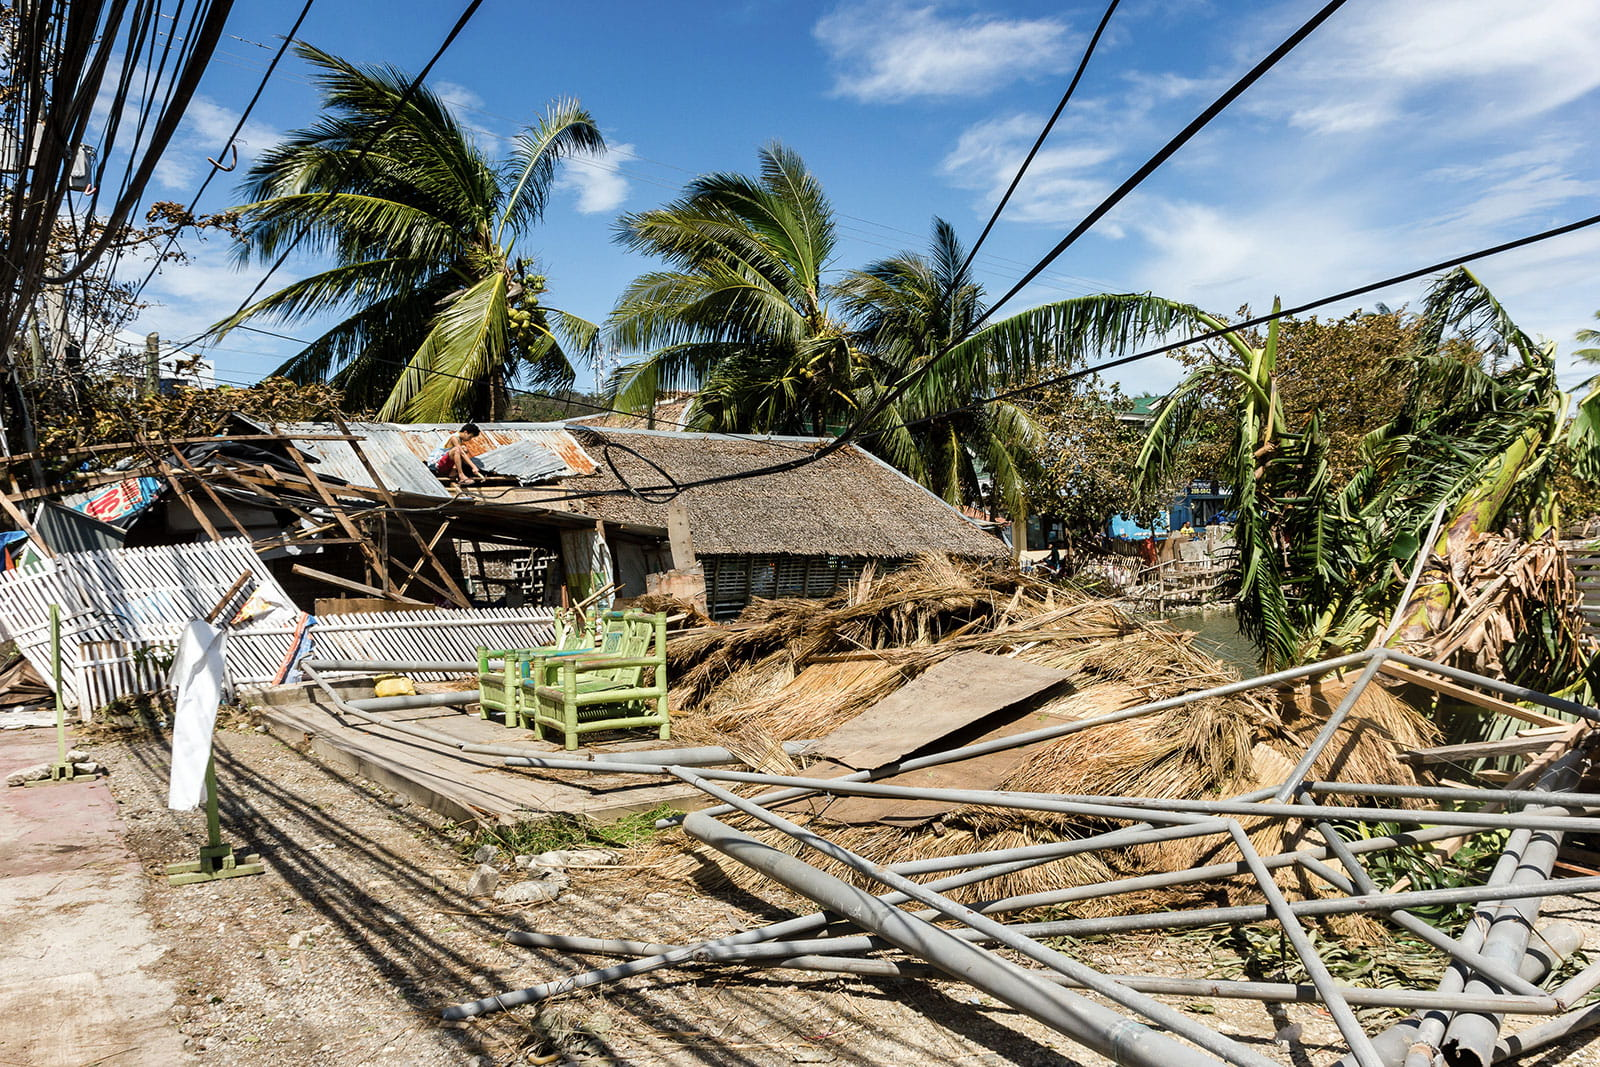 Disaster relief for devastated island communities